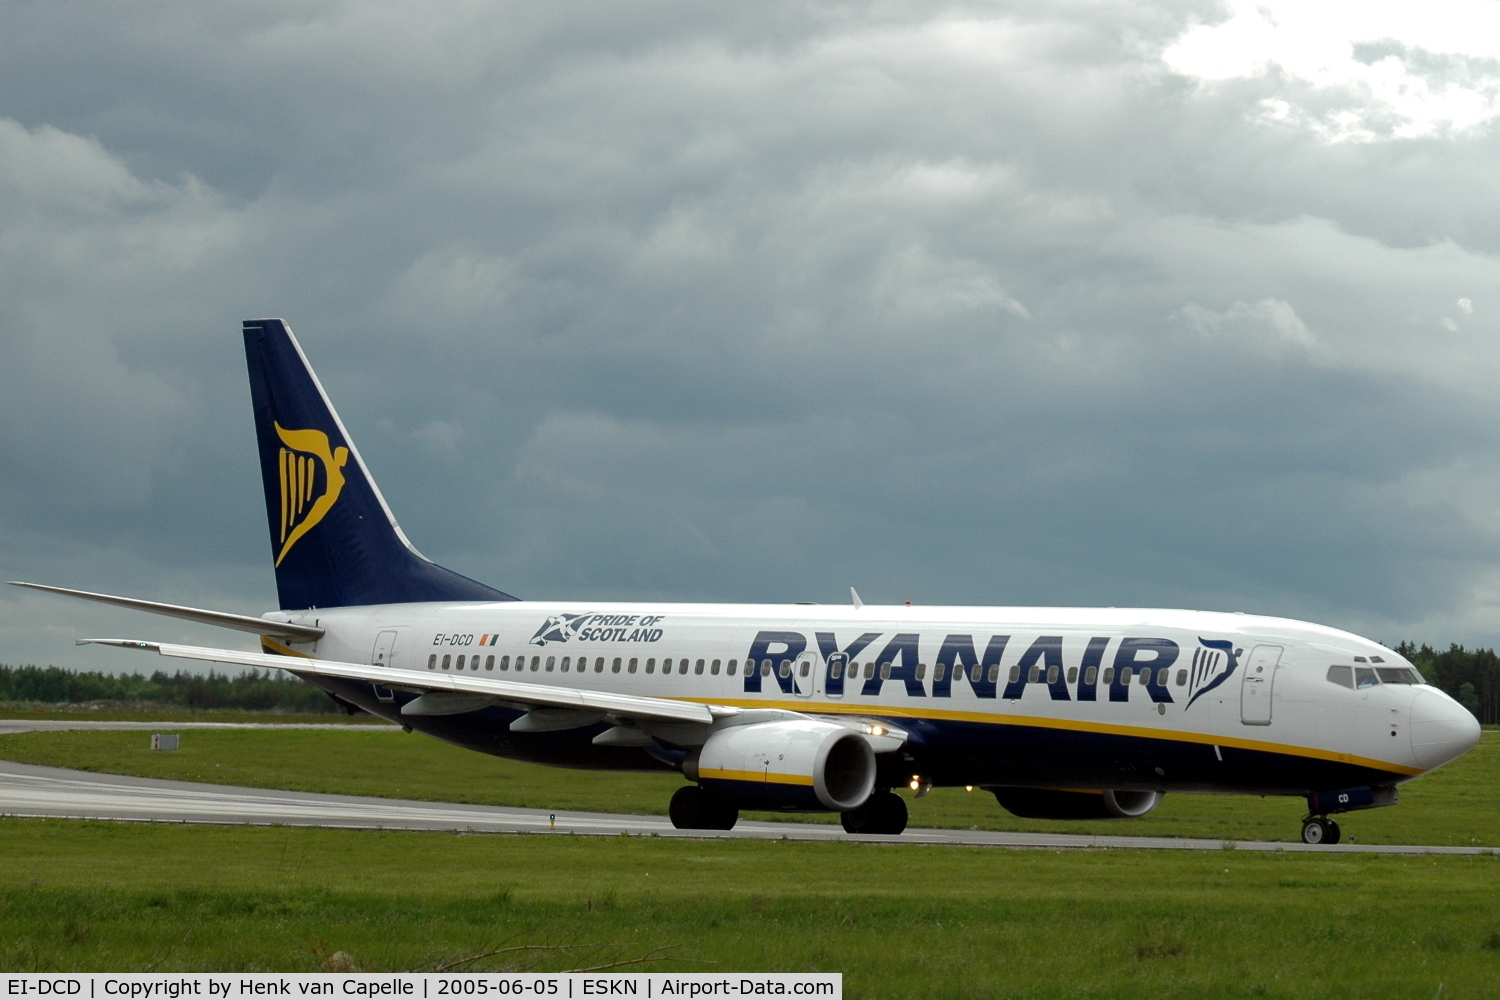 EI-DCD, 2004 Boeing 737-8AS C/N 33562, Ryanair Boeing 737-800 (without winglets) taxying at Nyköping Skavsta airport, Sweden.